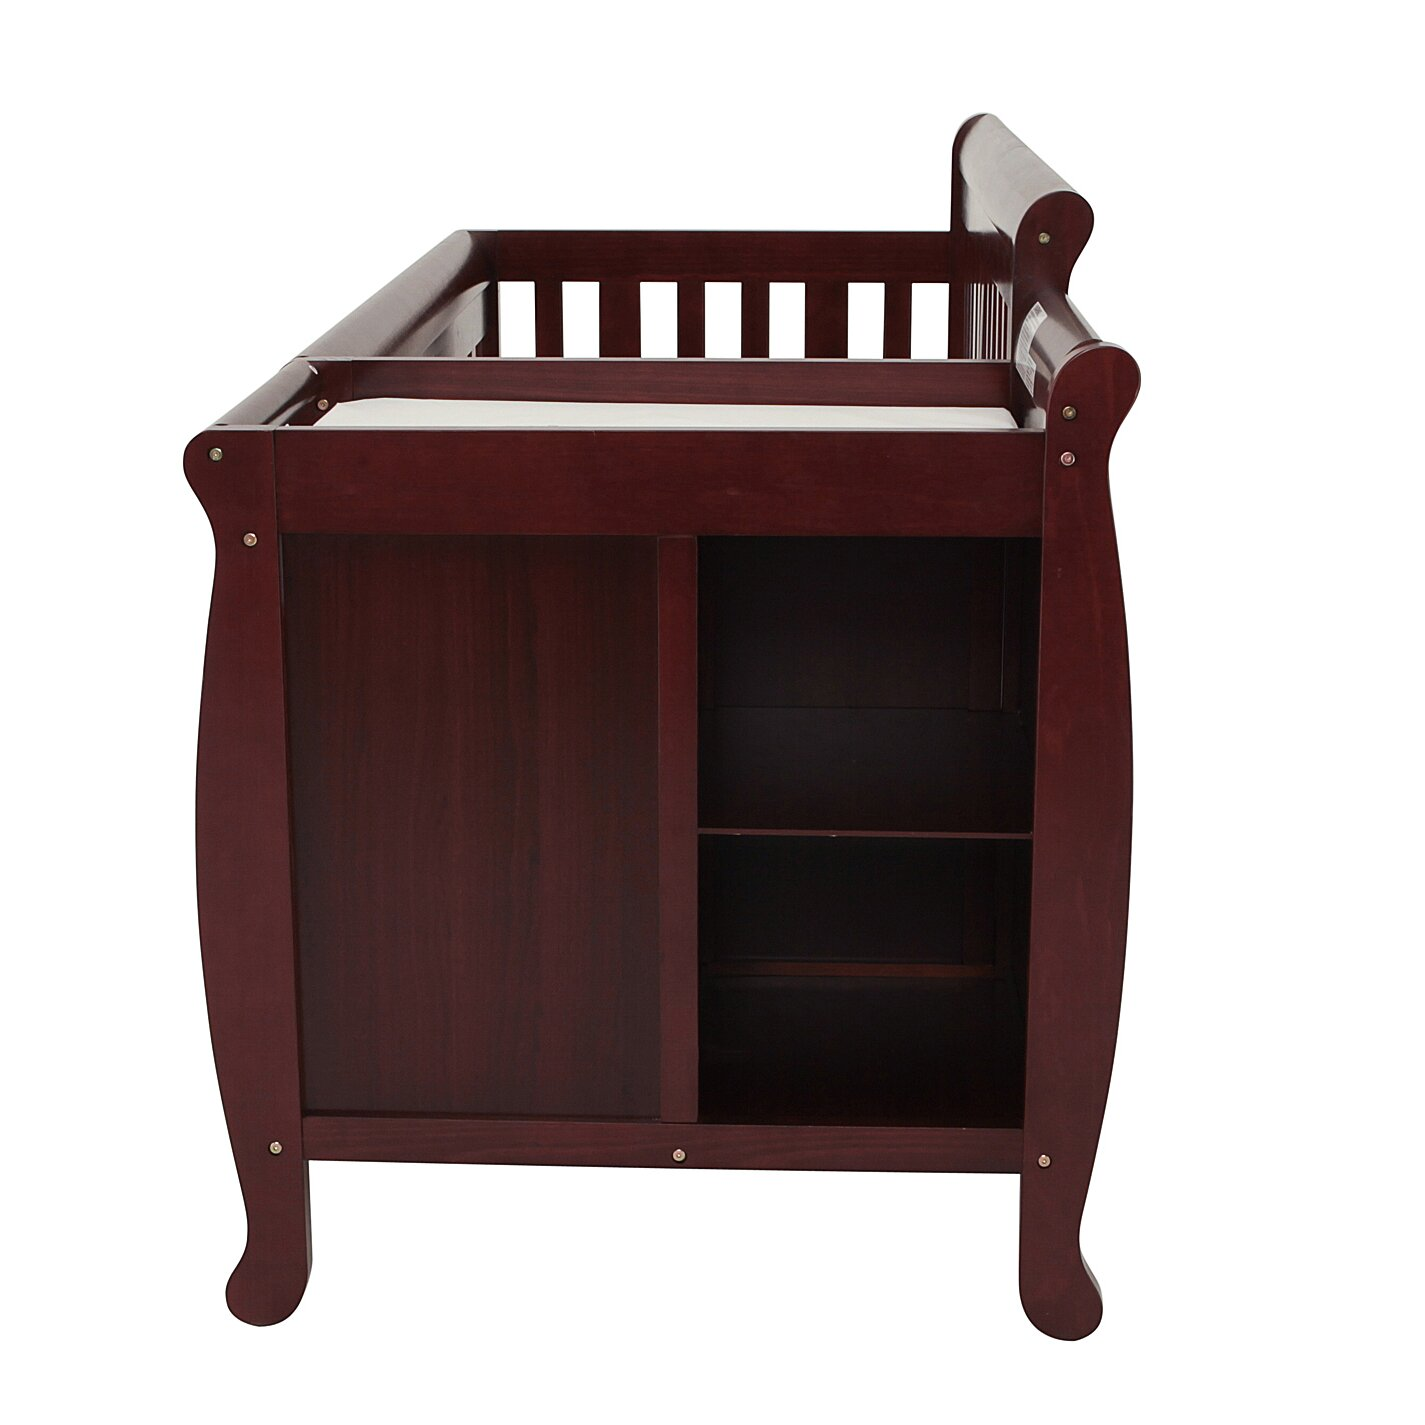 Afg international furniture kimberly 3 in 1 convertible for I furniture reviews